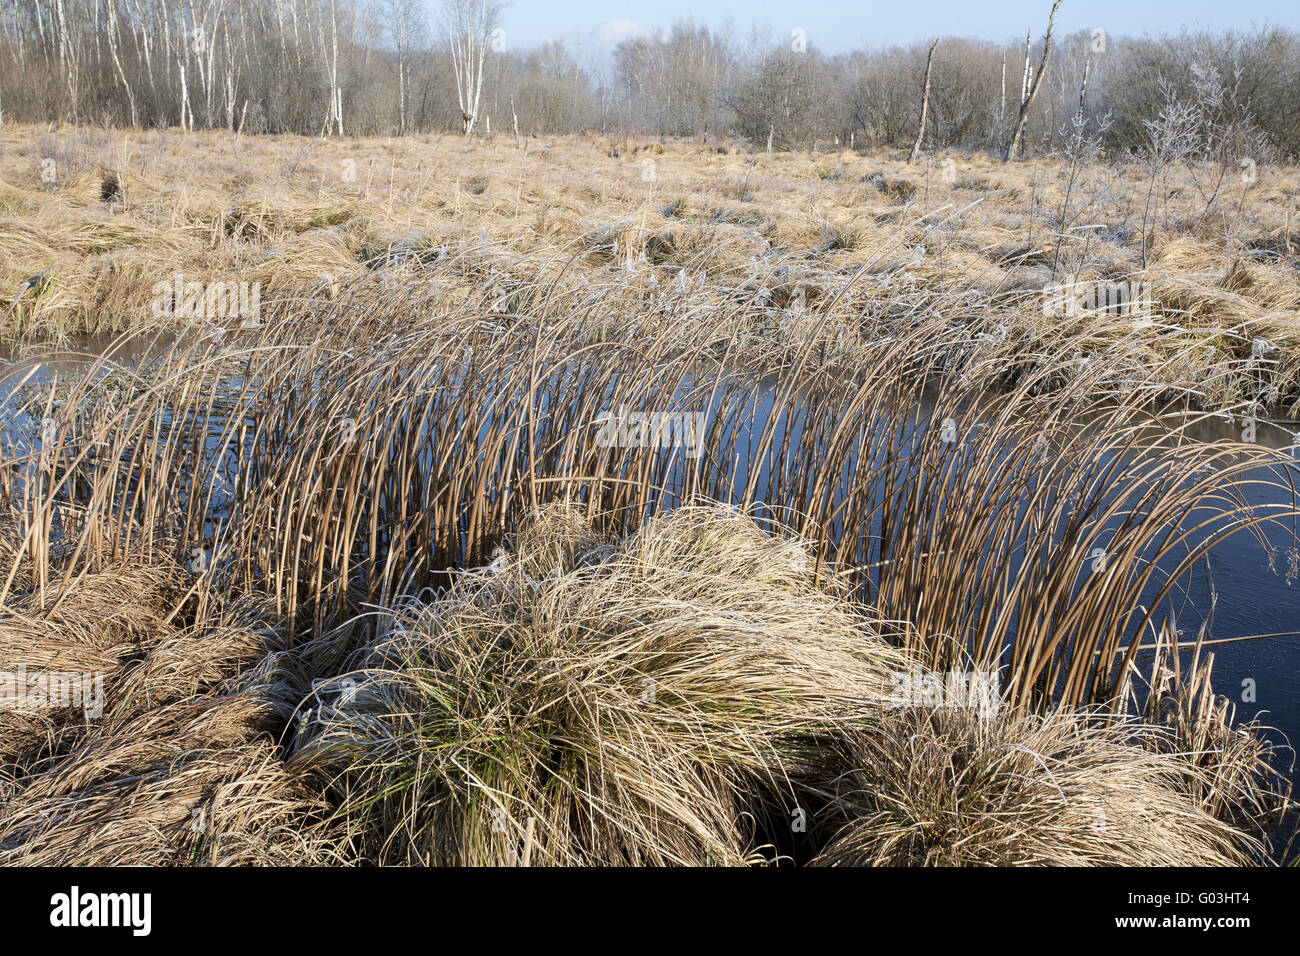 Birch forest and sedge reed, Germany, Bavaria Stock Photo